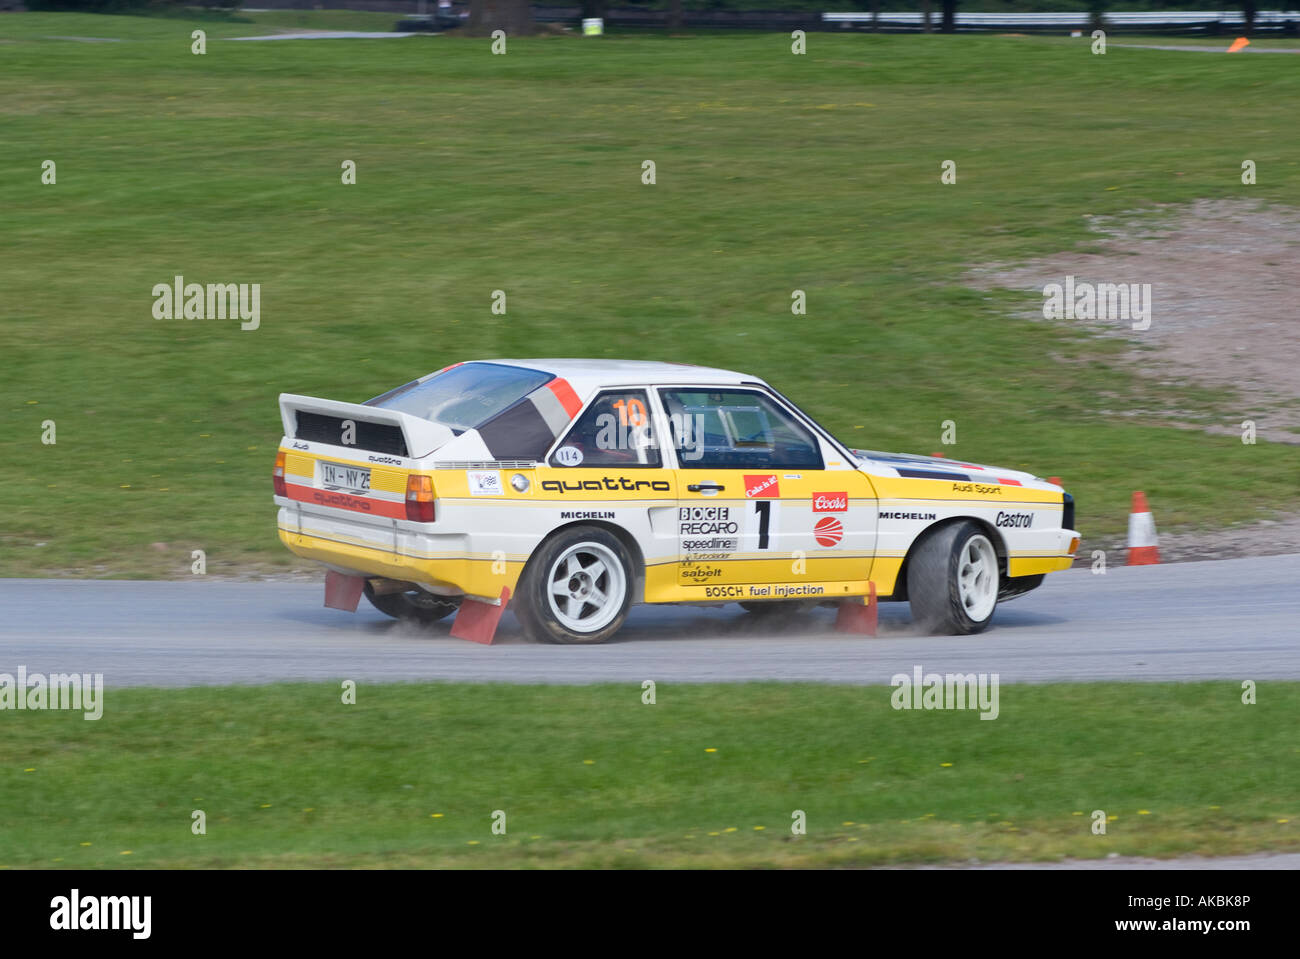 audi quattro short wheel base group b rally car at oulton park motor stock photo 14949525 alamy. Black Bedroom Furniture Sets. Home Design Ideas